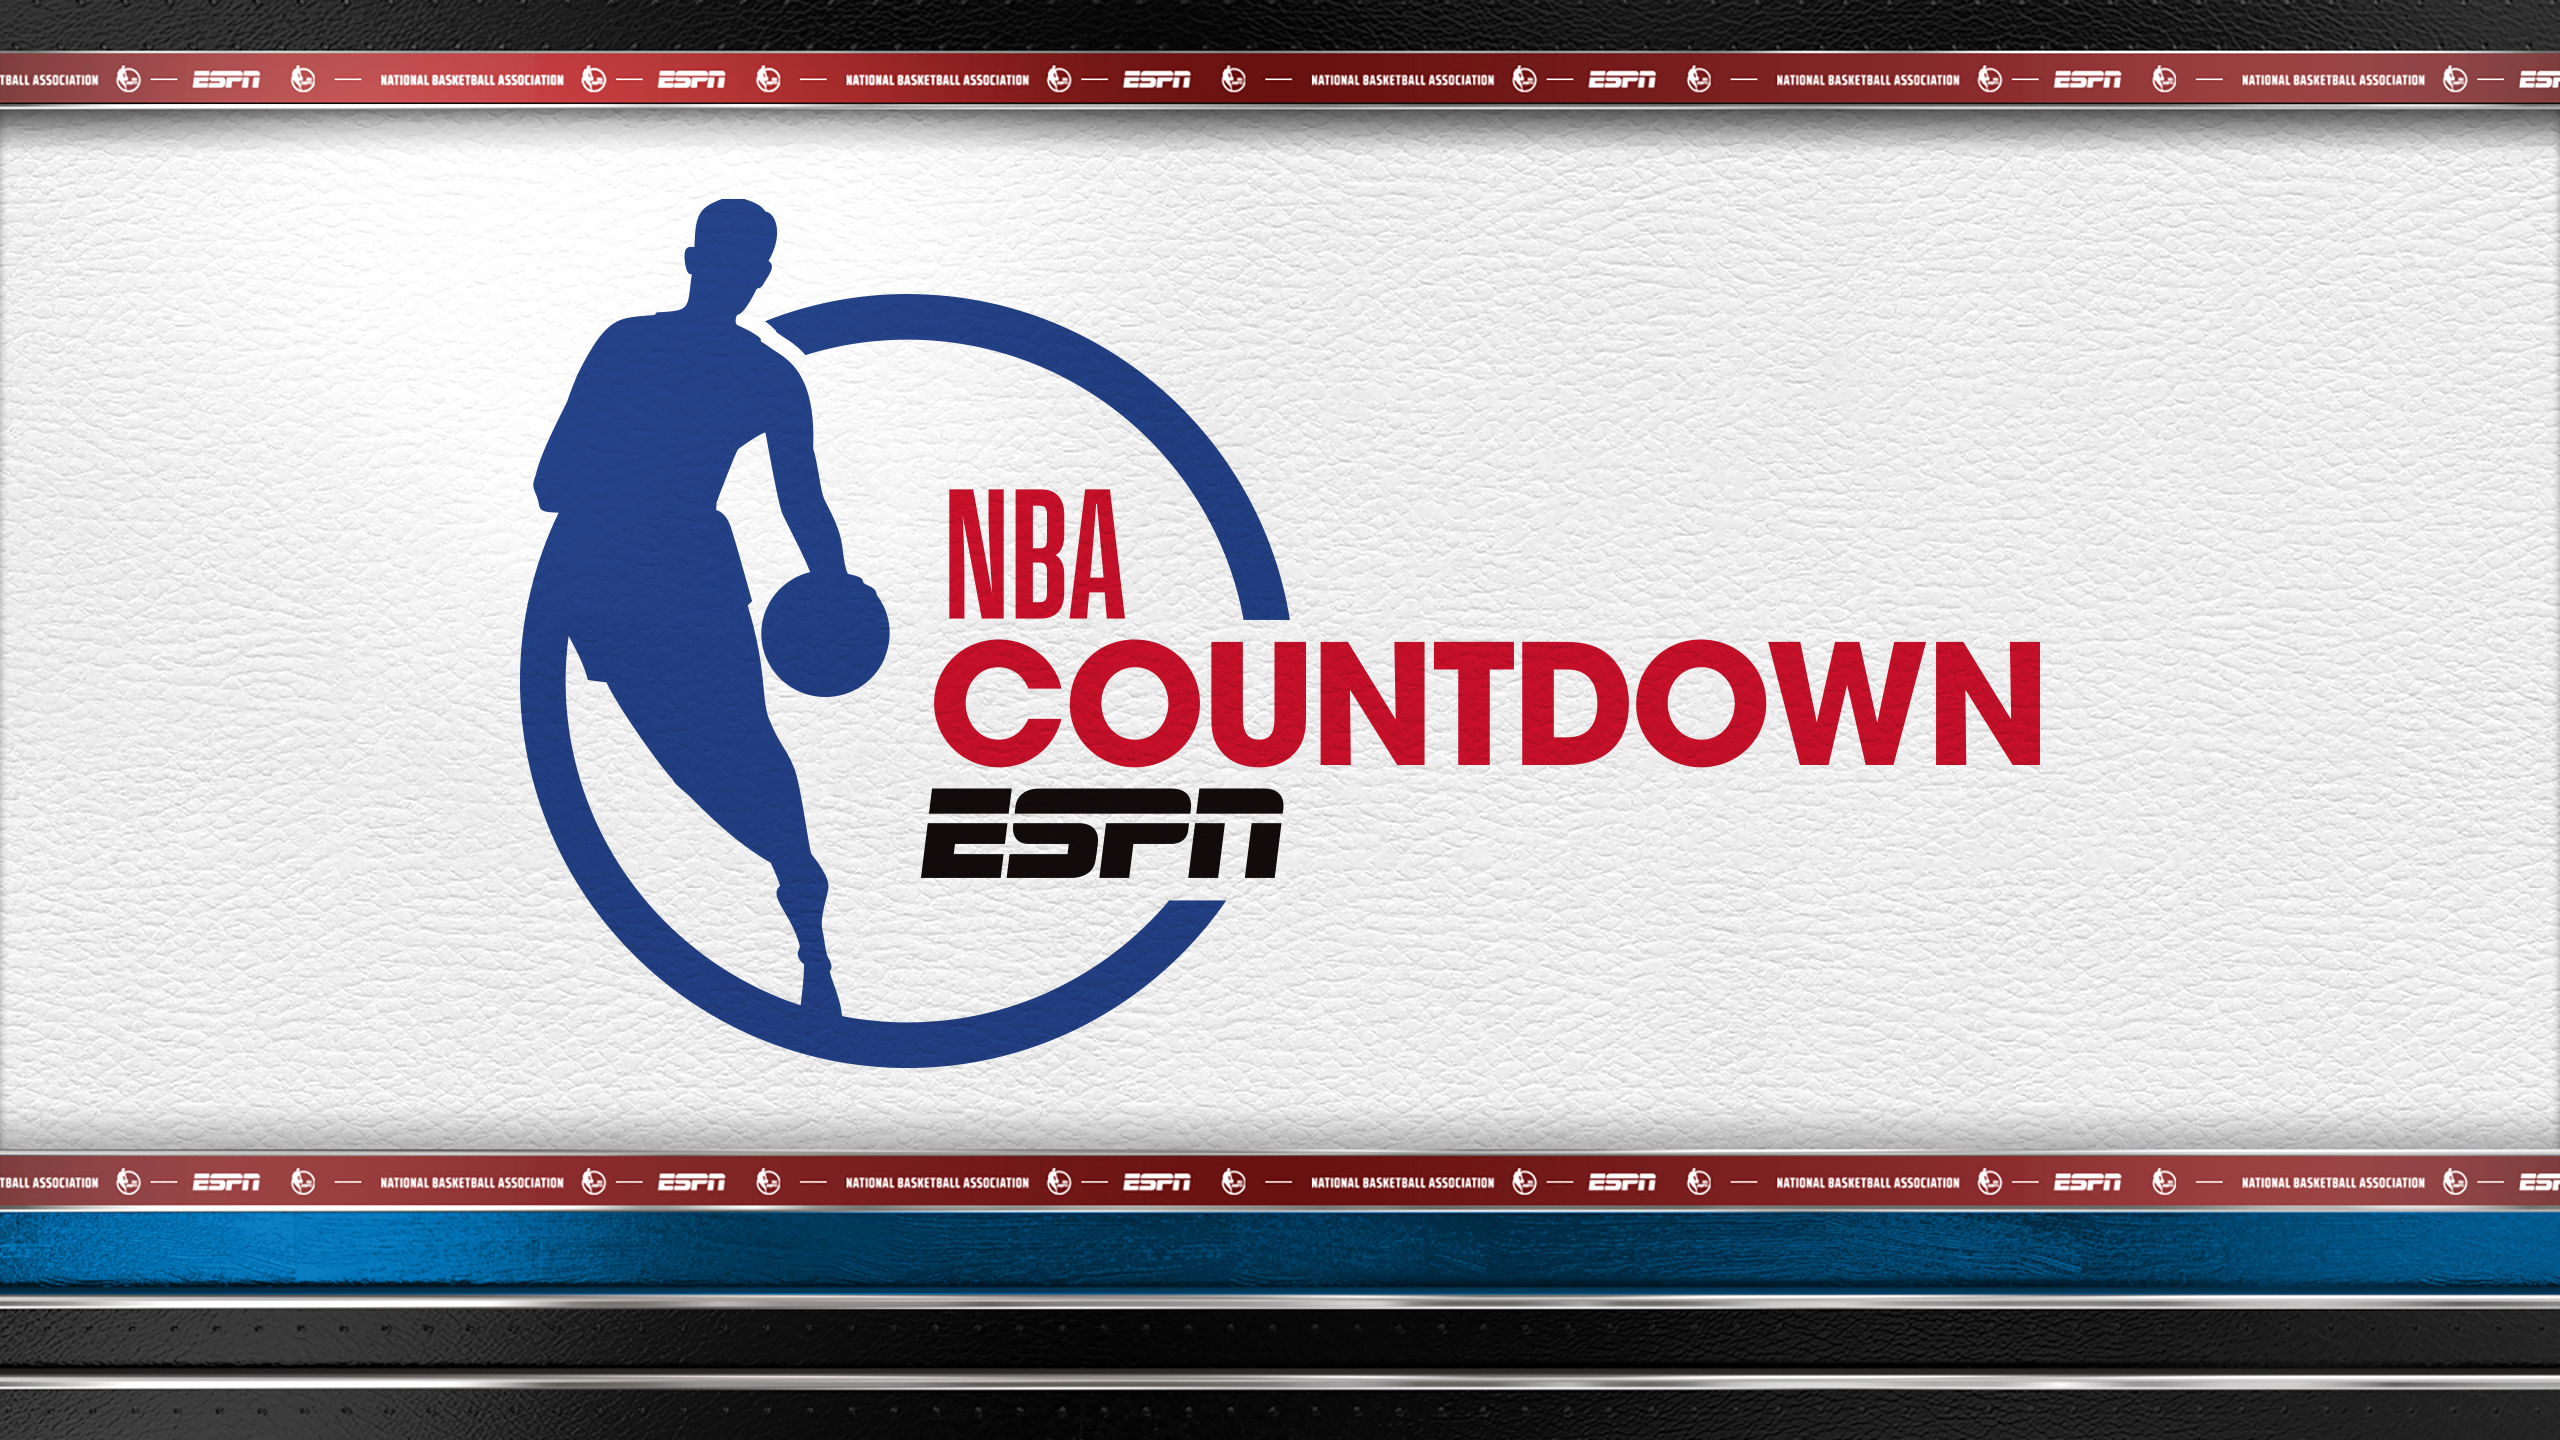 NBA Countdown Presented by Mountain Dew Ice